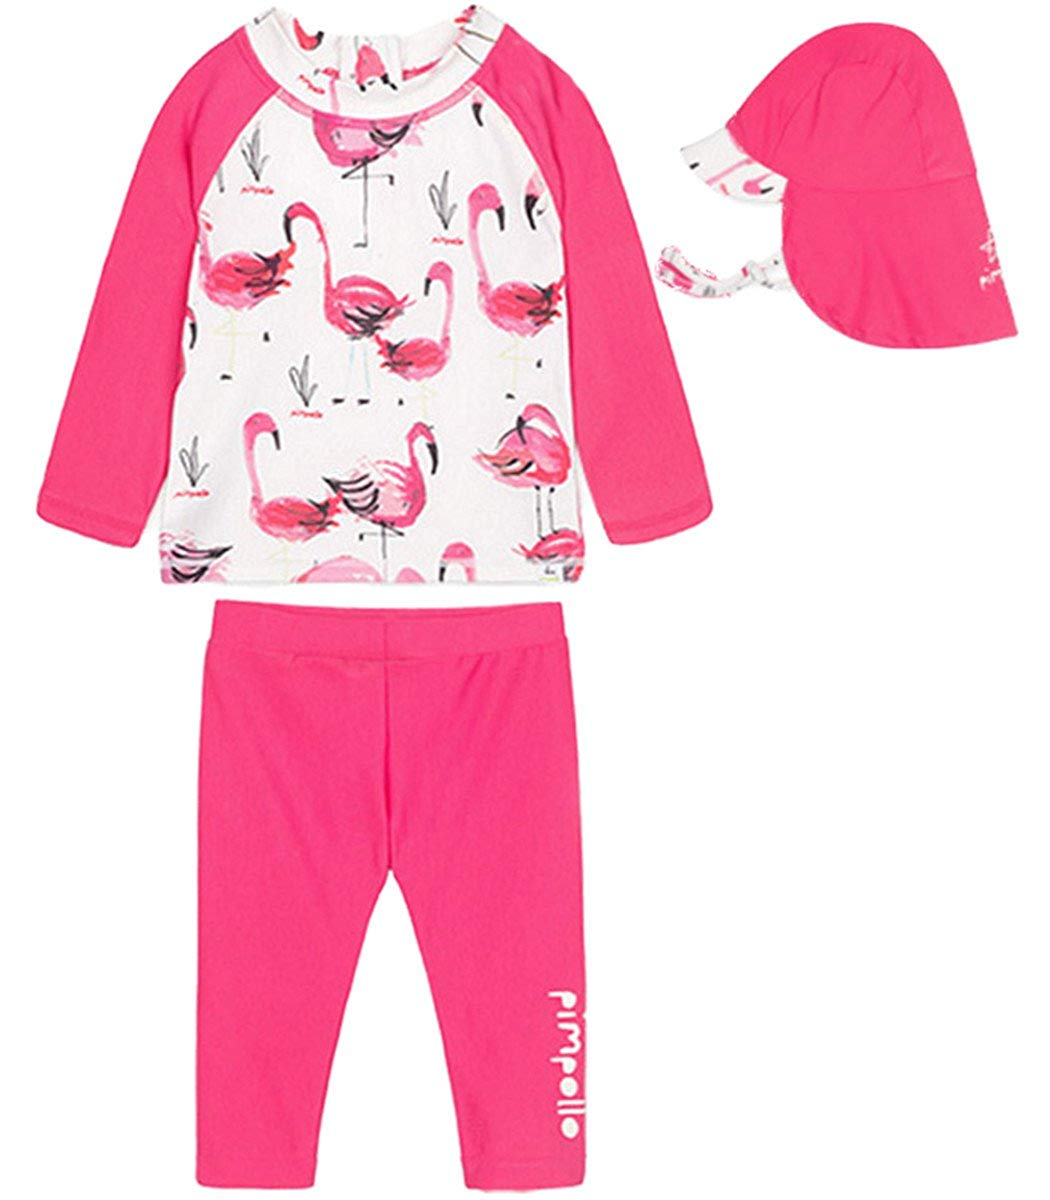 54cbbbc494 Get Quotations · Baby Kids Little Girls Two Pieces Flamingo Long Sleeve Full  Body Rash Guard UPF 50+